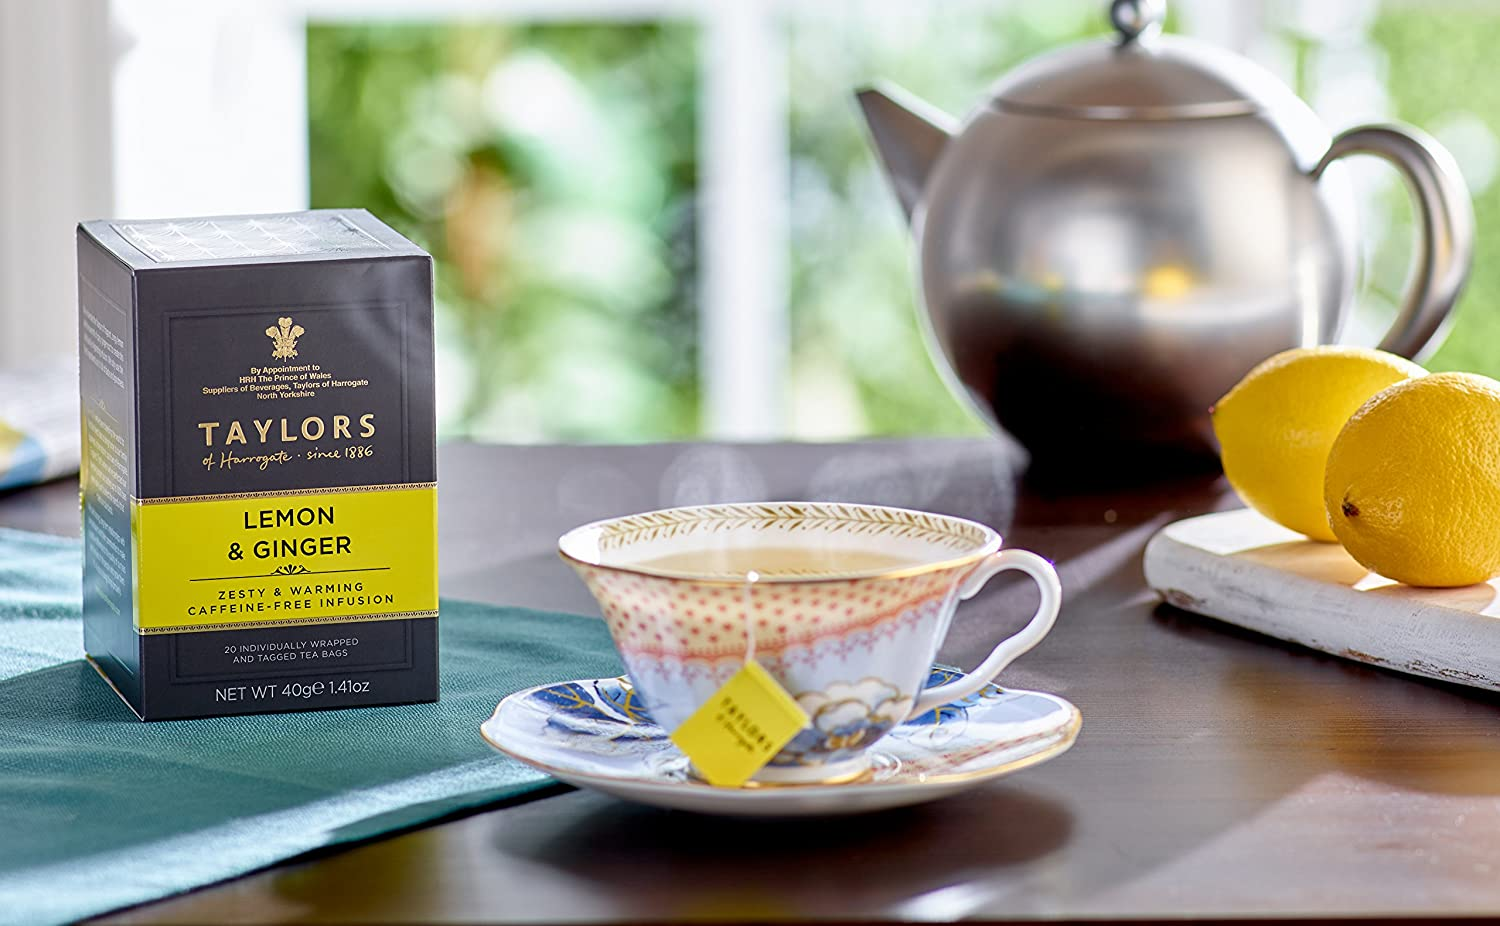 Taylors of Harrogate Lemon & Ginger Herbal Tea